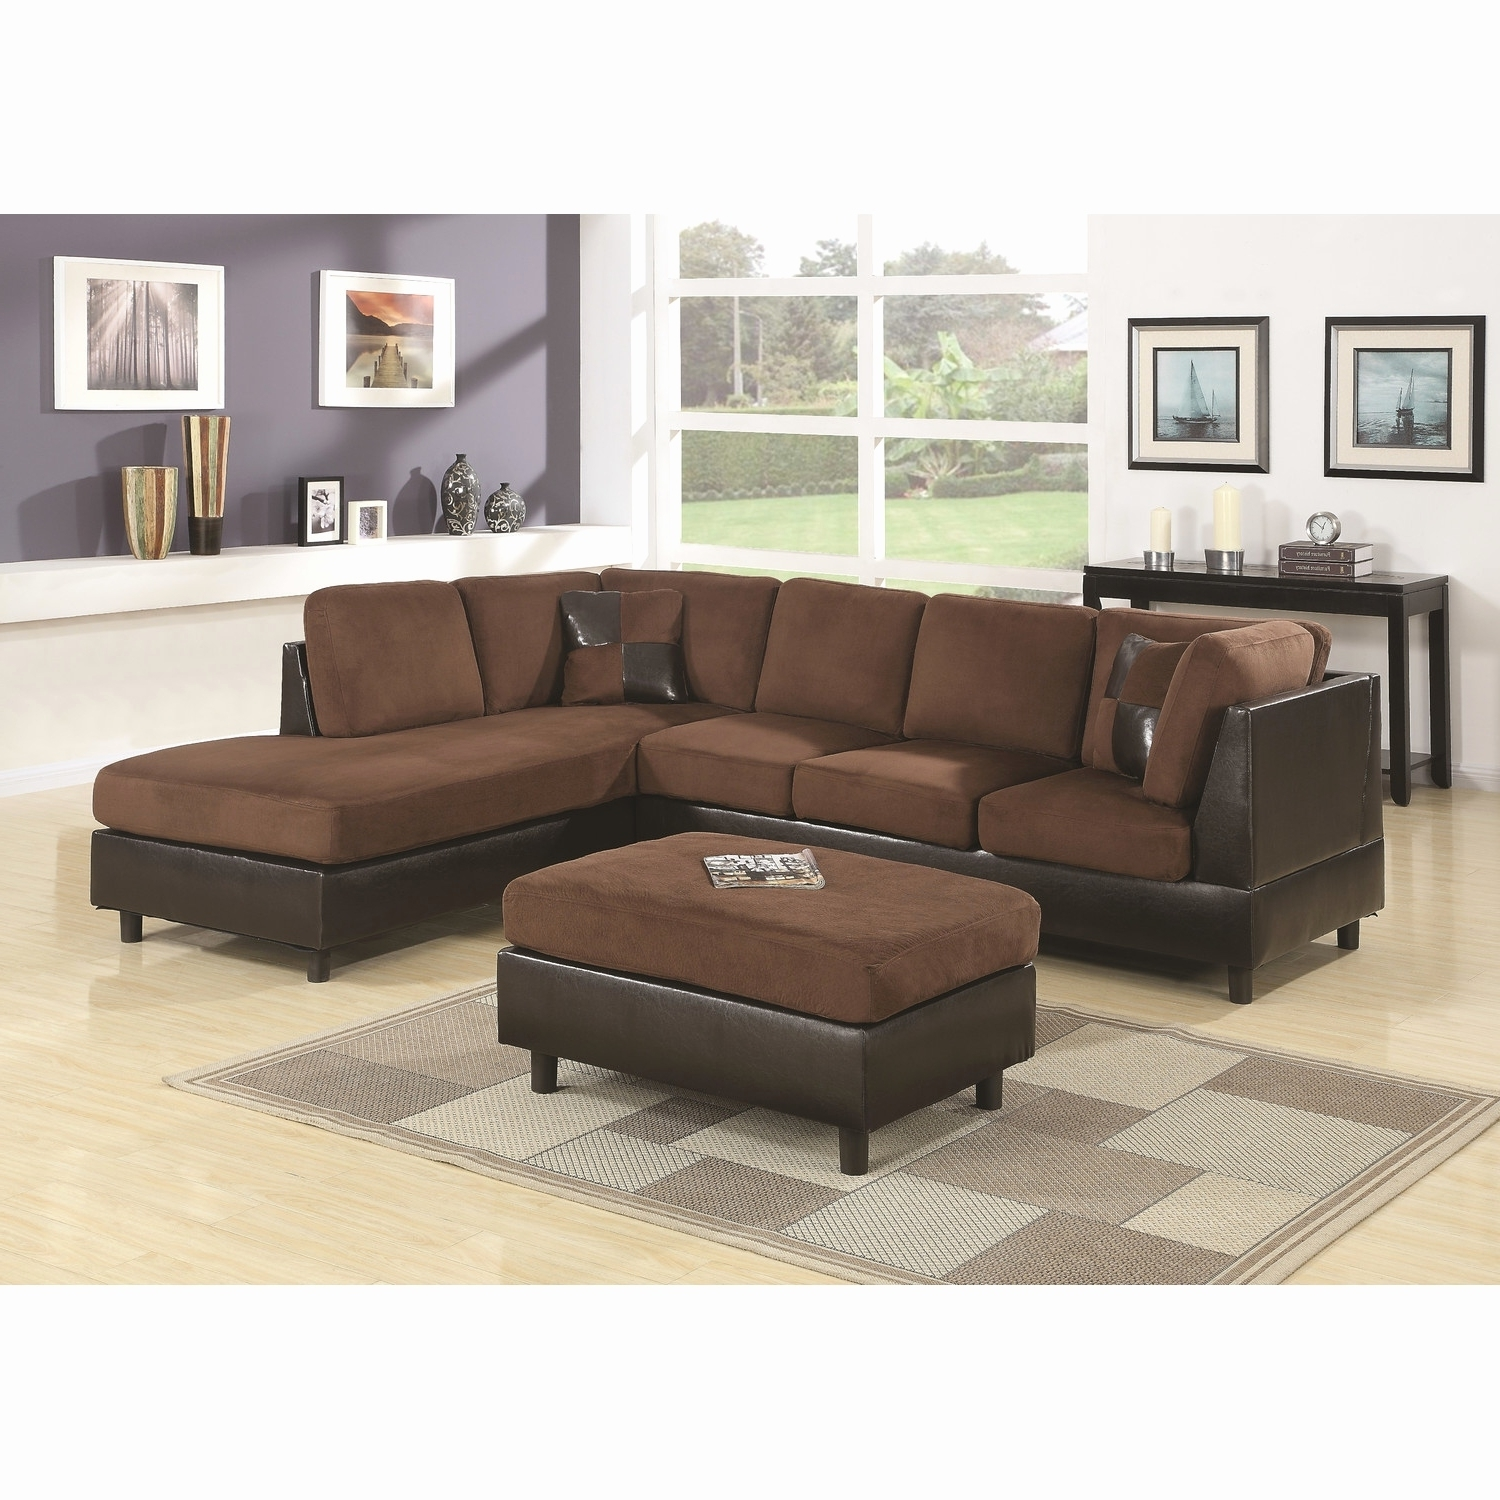 Sectional Sofas In San Antonio Throughout Well Liked New Leather Sofas San Antonio 2018 – Couches And Sofas Ideas (View 13 of 15)